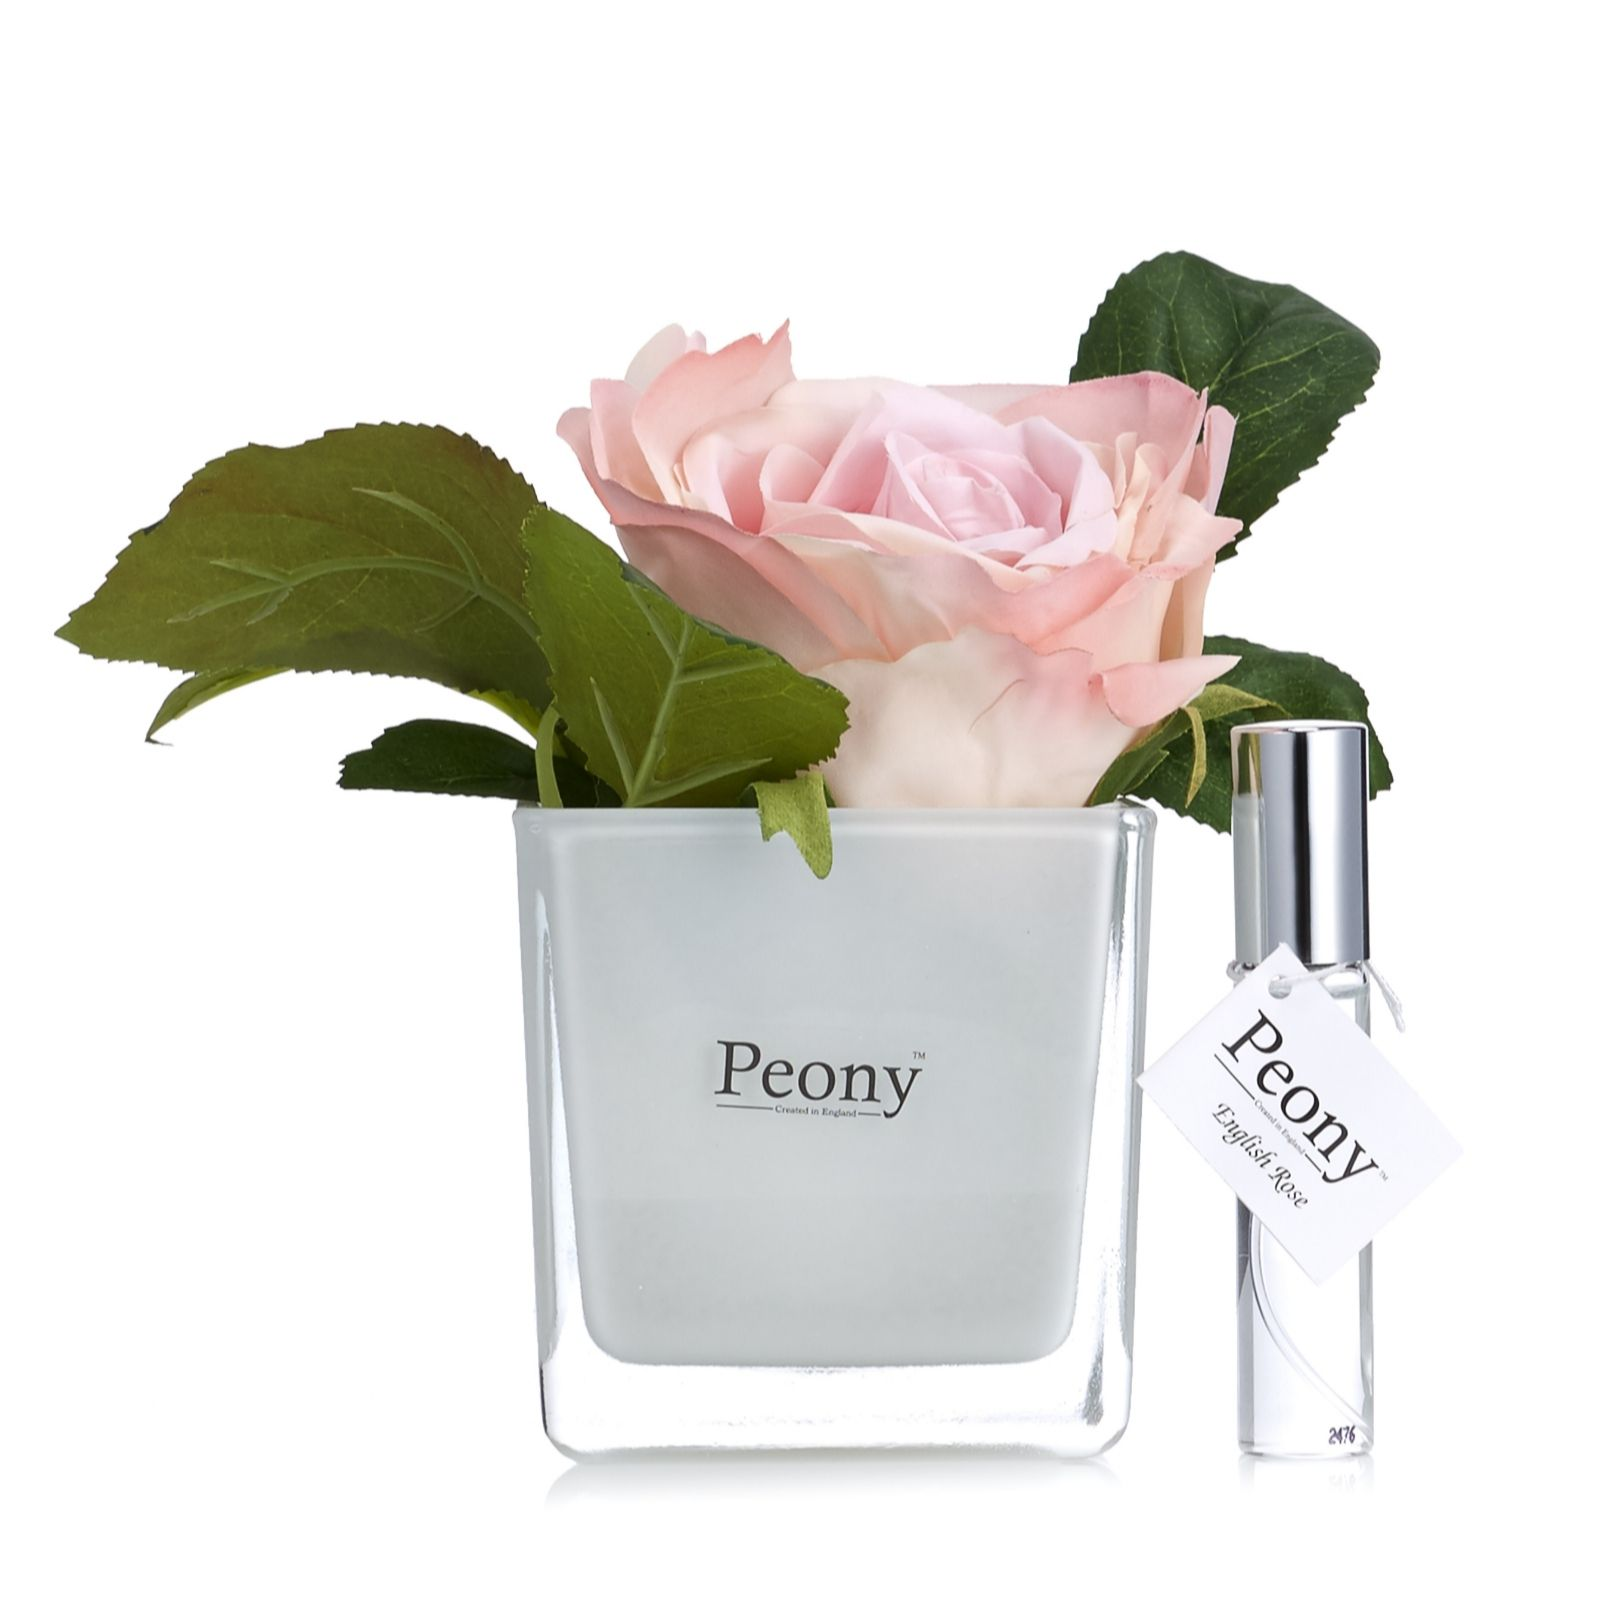 Peony Rose in White Cube with Fragrance Spray Mist in Giftbox